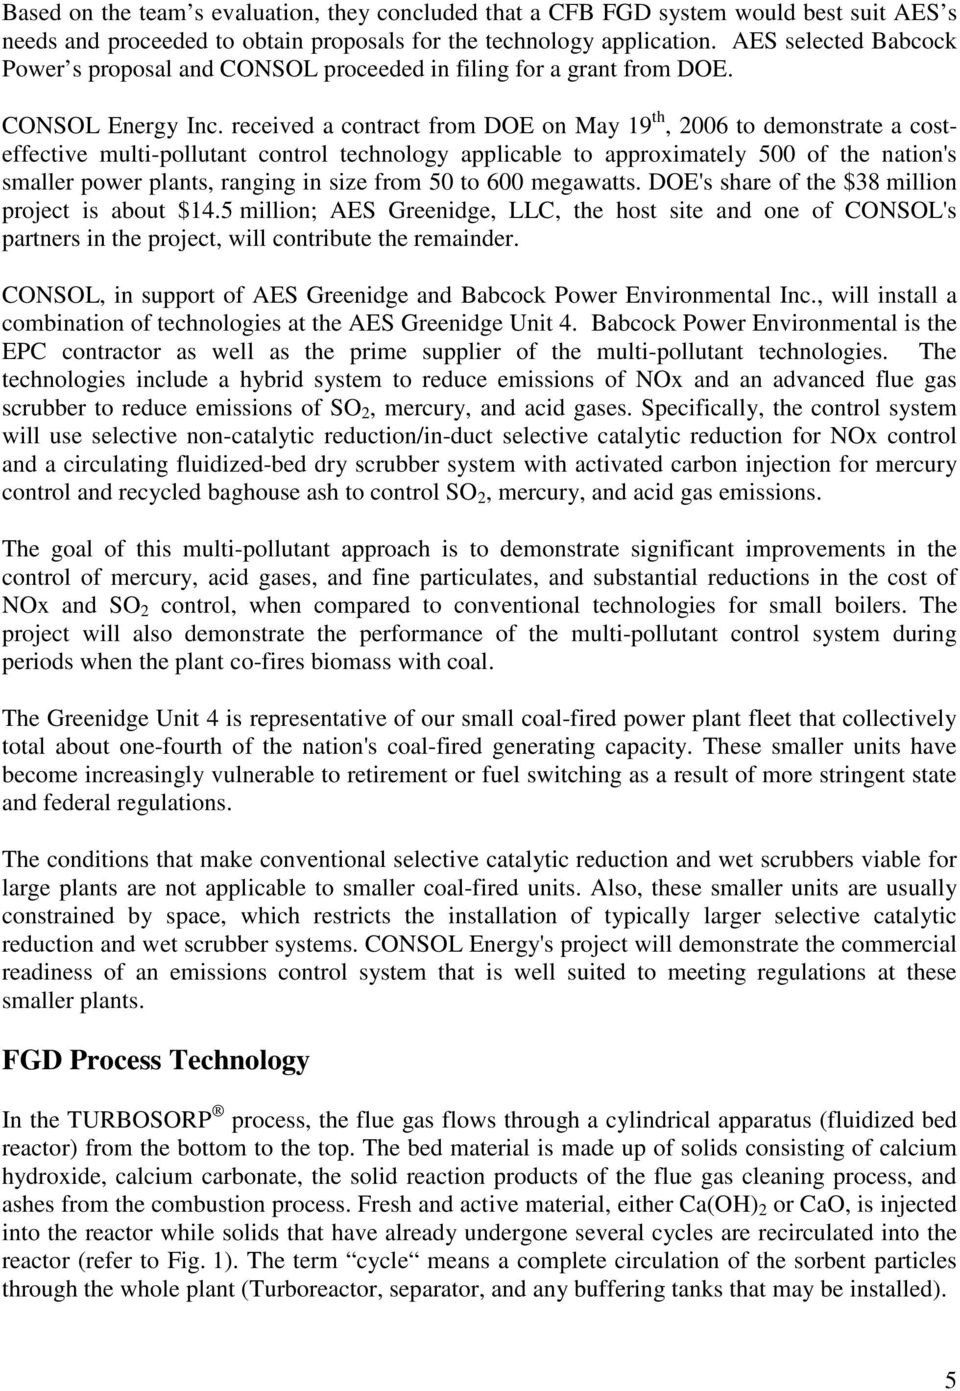 received a contract from DOE on May 19 th, 2006 to demonstrate a costeffective multi-pollutant control technology applicable to approximately 500 of the nation's smaller power plants, ranging in size